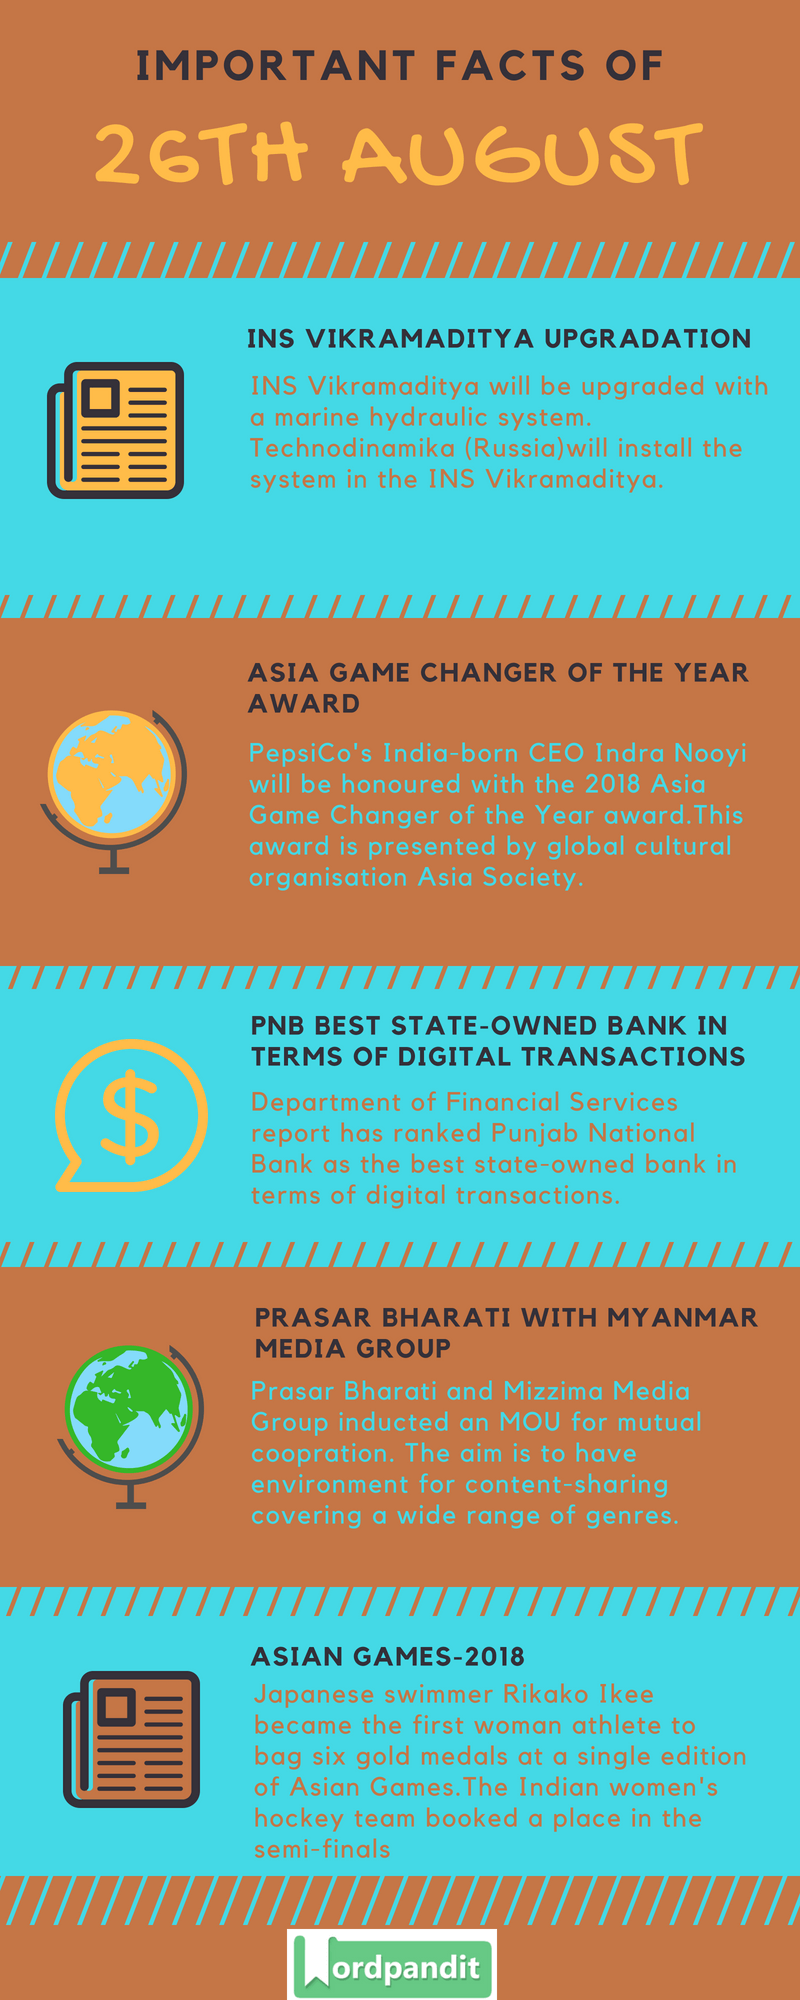 Daily Current Affairs 26 August 2018 Current Affairs Quiz August 26 2018 Current Affairs Infographic